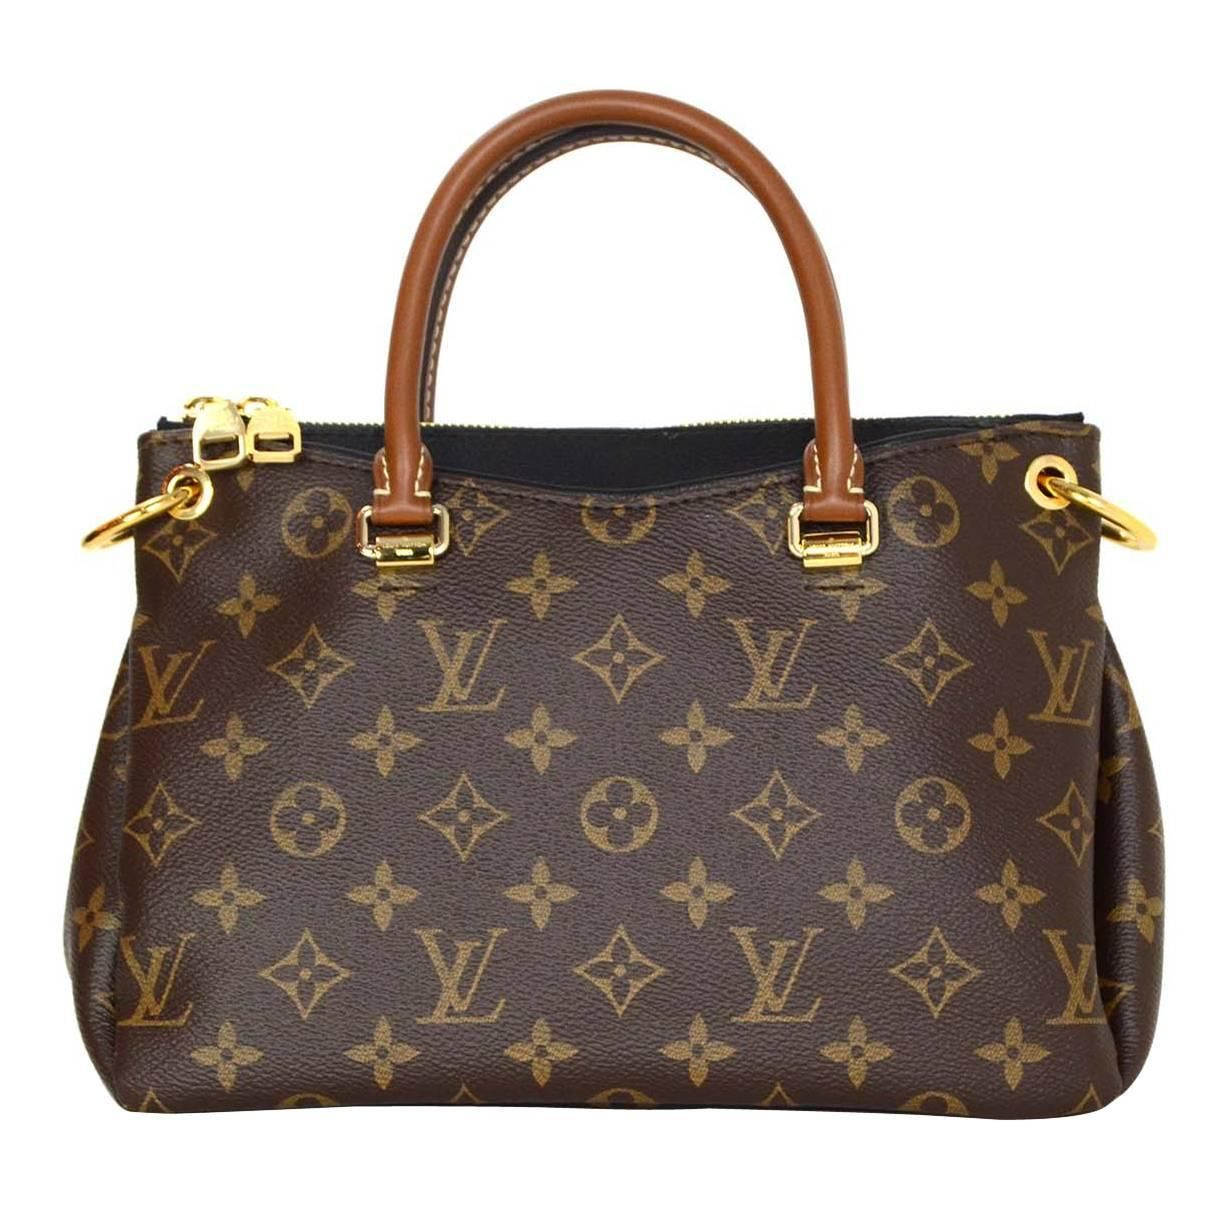 34805219d738 For Sale on - Louis Vuitton Monogram Canvas   Black Leather Pallas BB Bag  Features optional shoulder crossbody strap Made In  U.